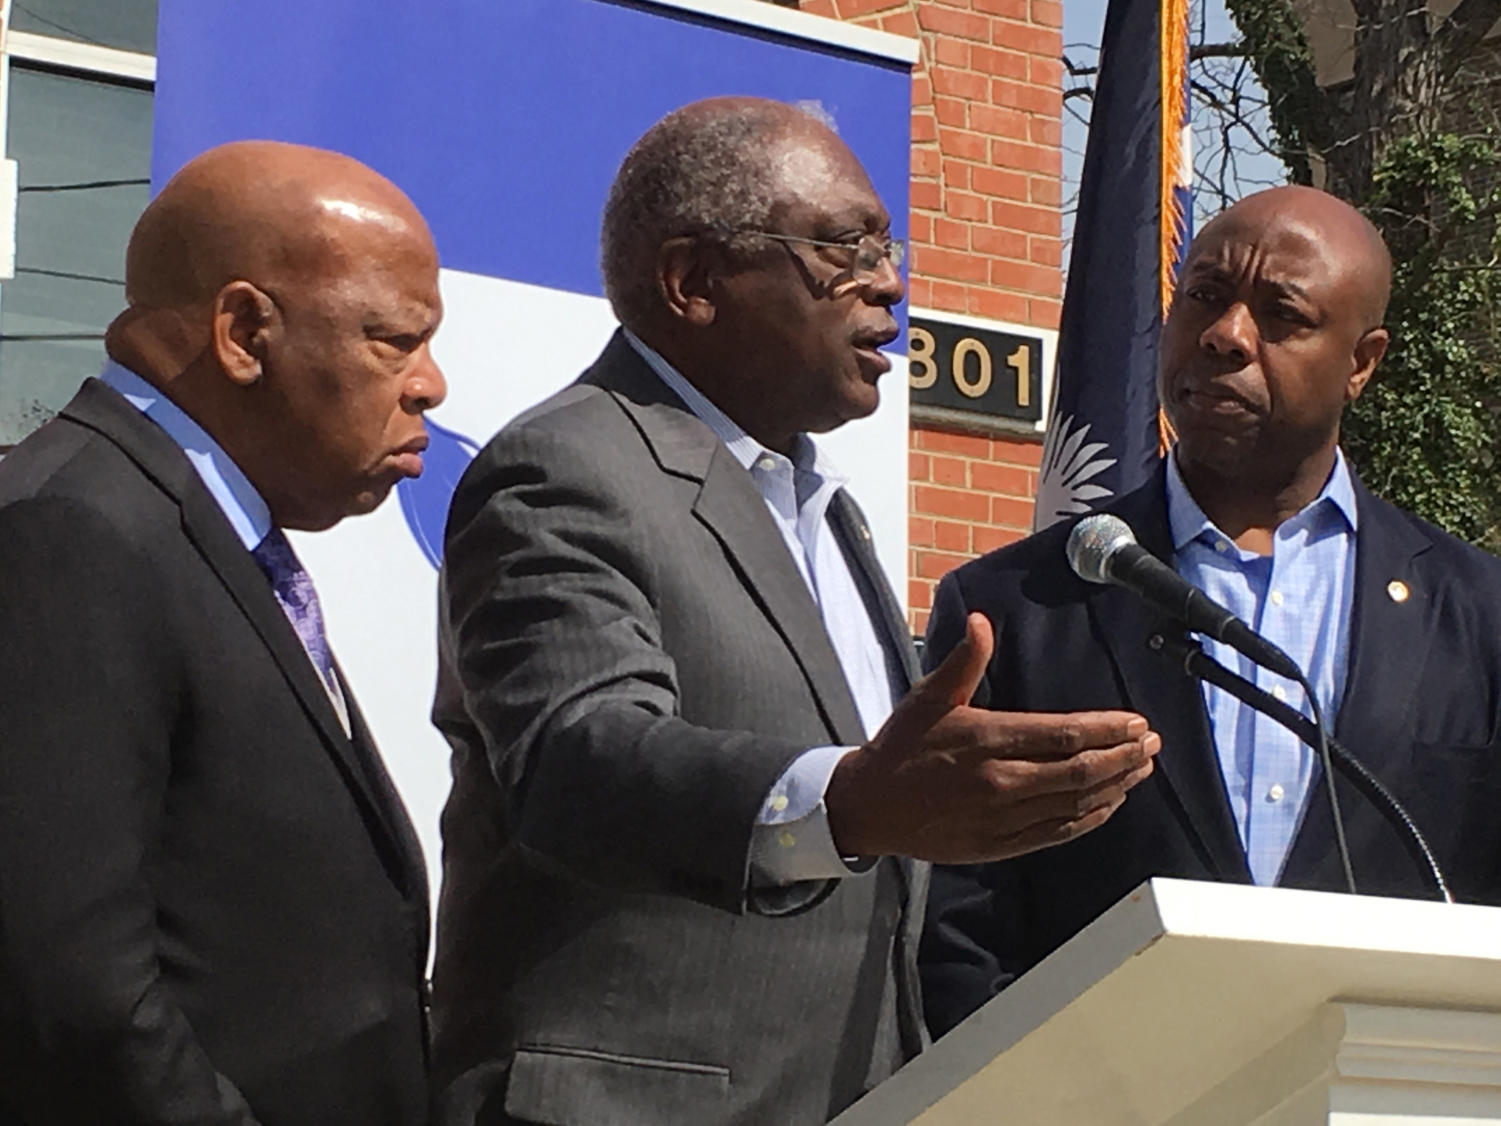 U.S. Reps. John Lewis (D-Ga.), Jim Clyburn, (D-S.C.), and U.S. Sen. Tim Scott, (R-S.C.), speak to reporters kicking off the Faith and Politics Institute civil-rights pilgrimage in South Carolina on March 18, 2016, in Columbia, S.C. (Jamie Self/The State/TNS)